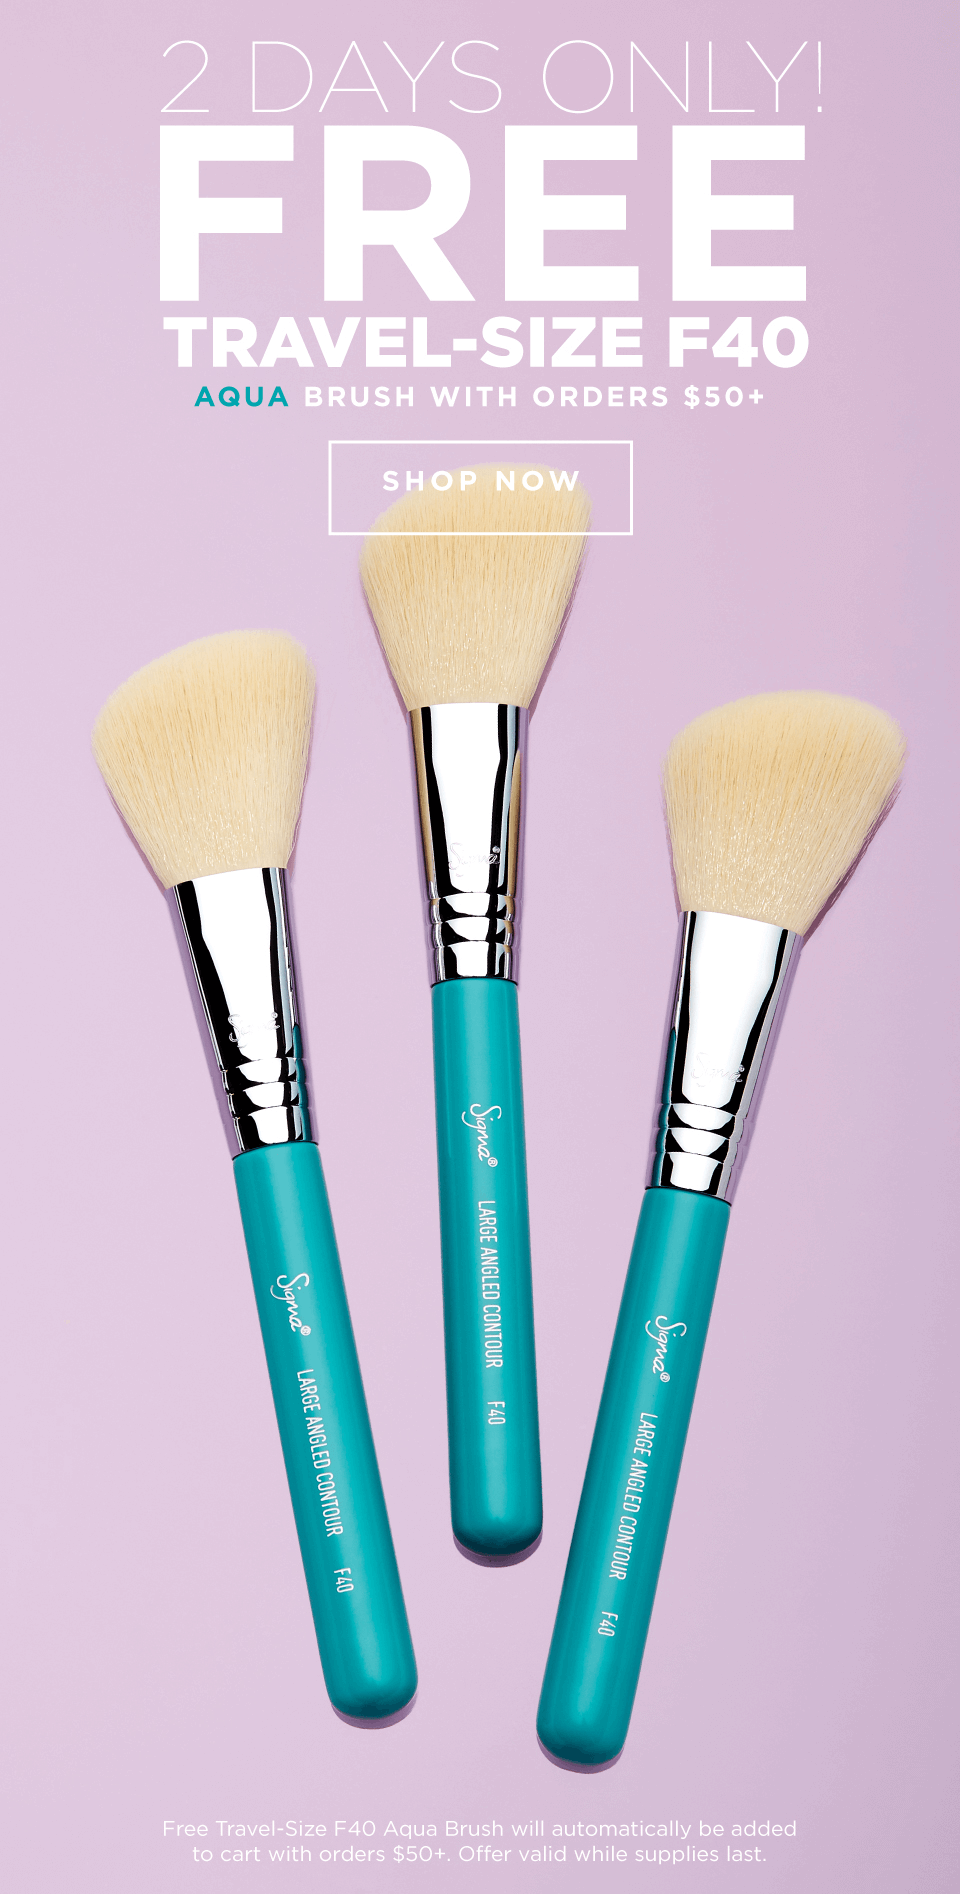 Free Travel-Size F40 Aqua Brush with orders $50+